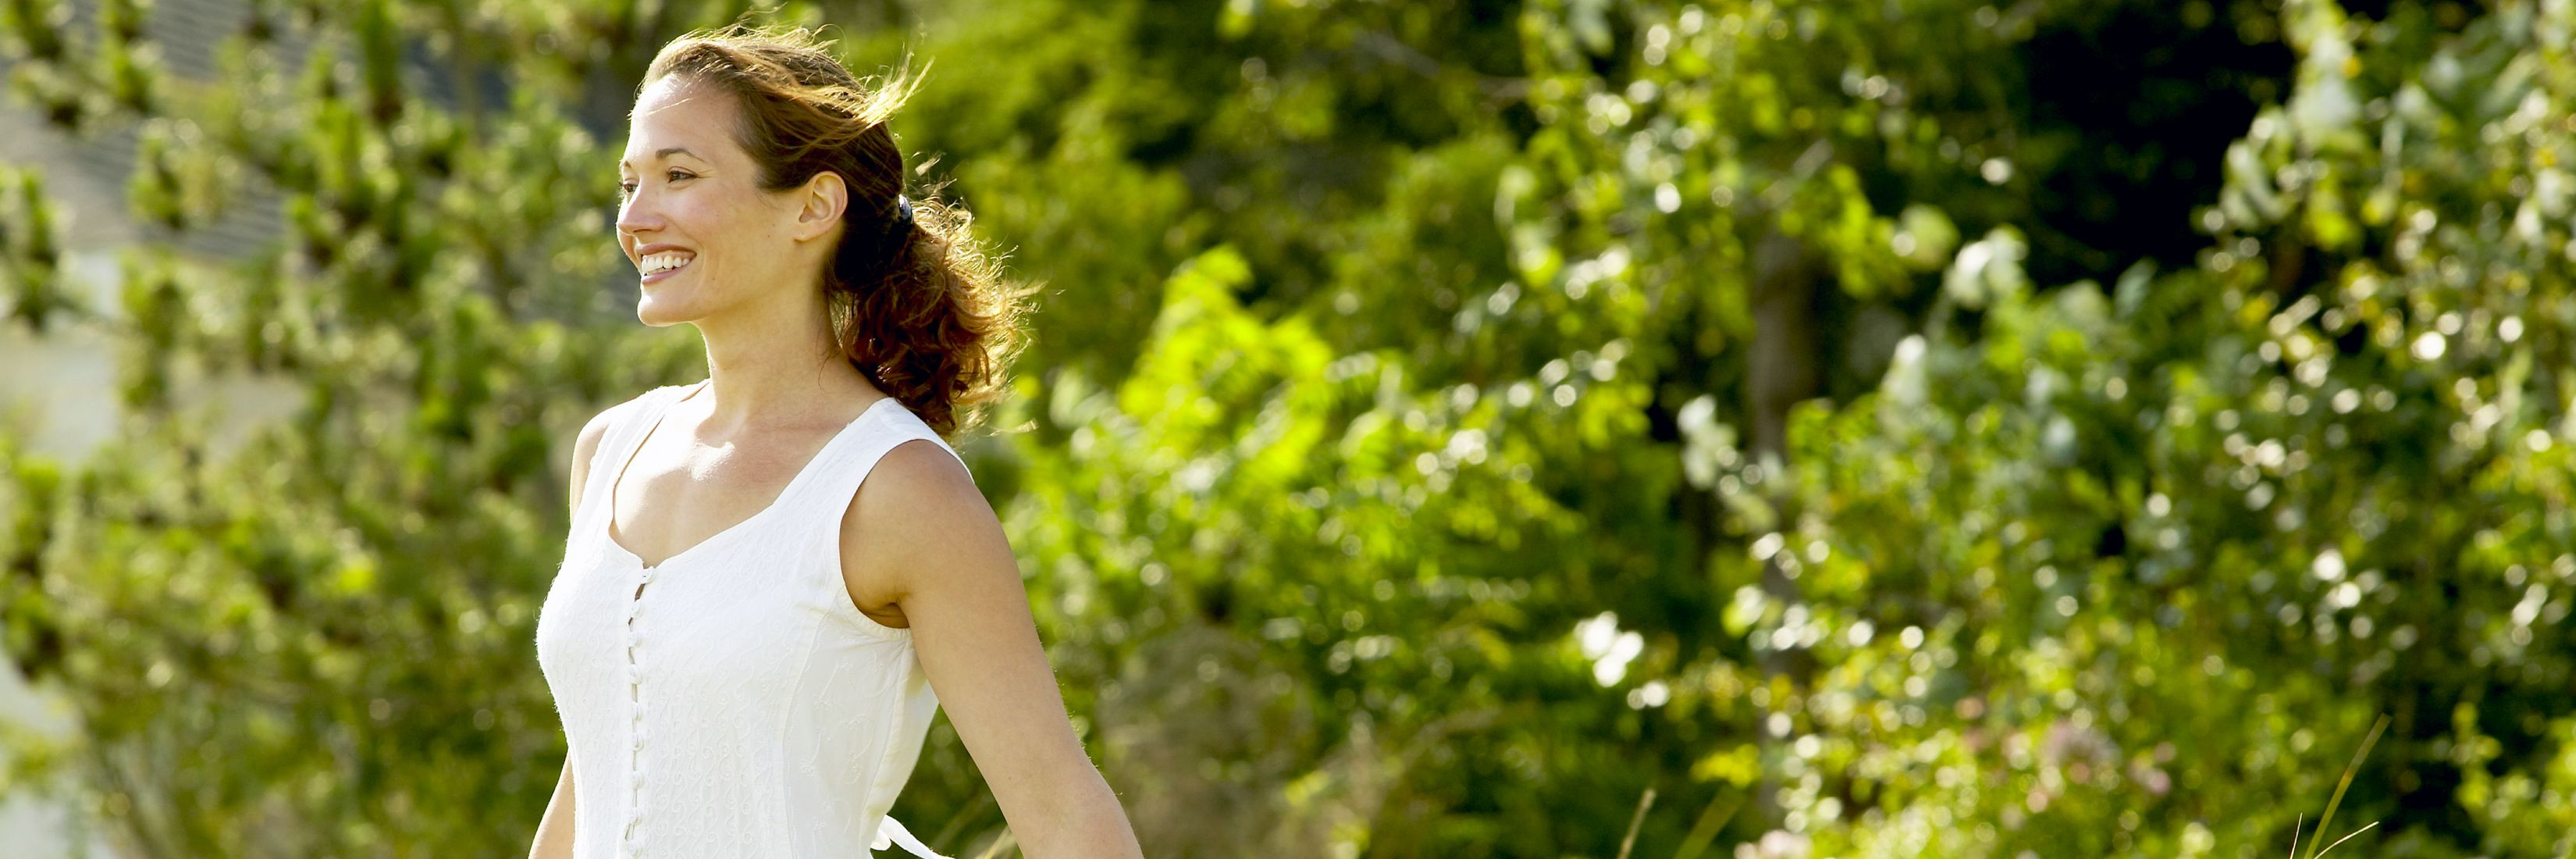 woman in white dress standing in a field and smiling